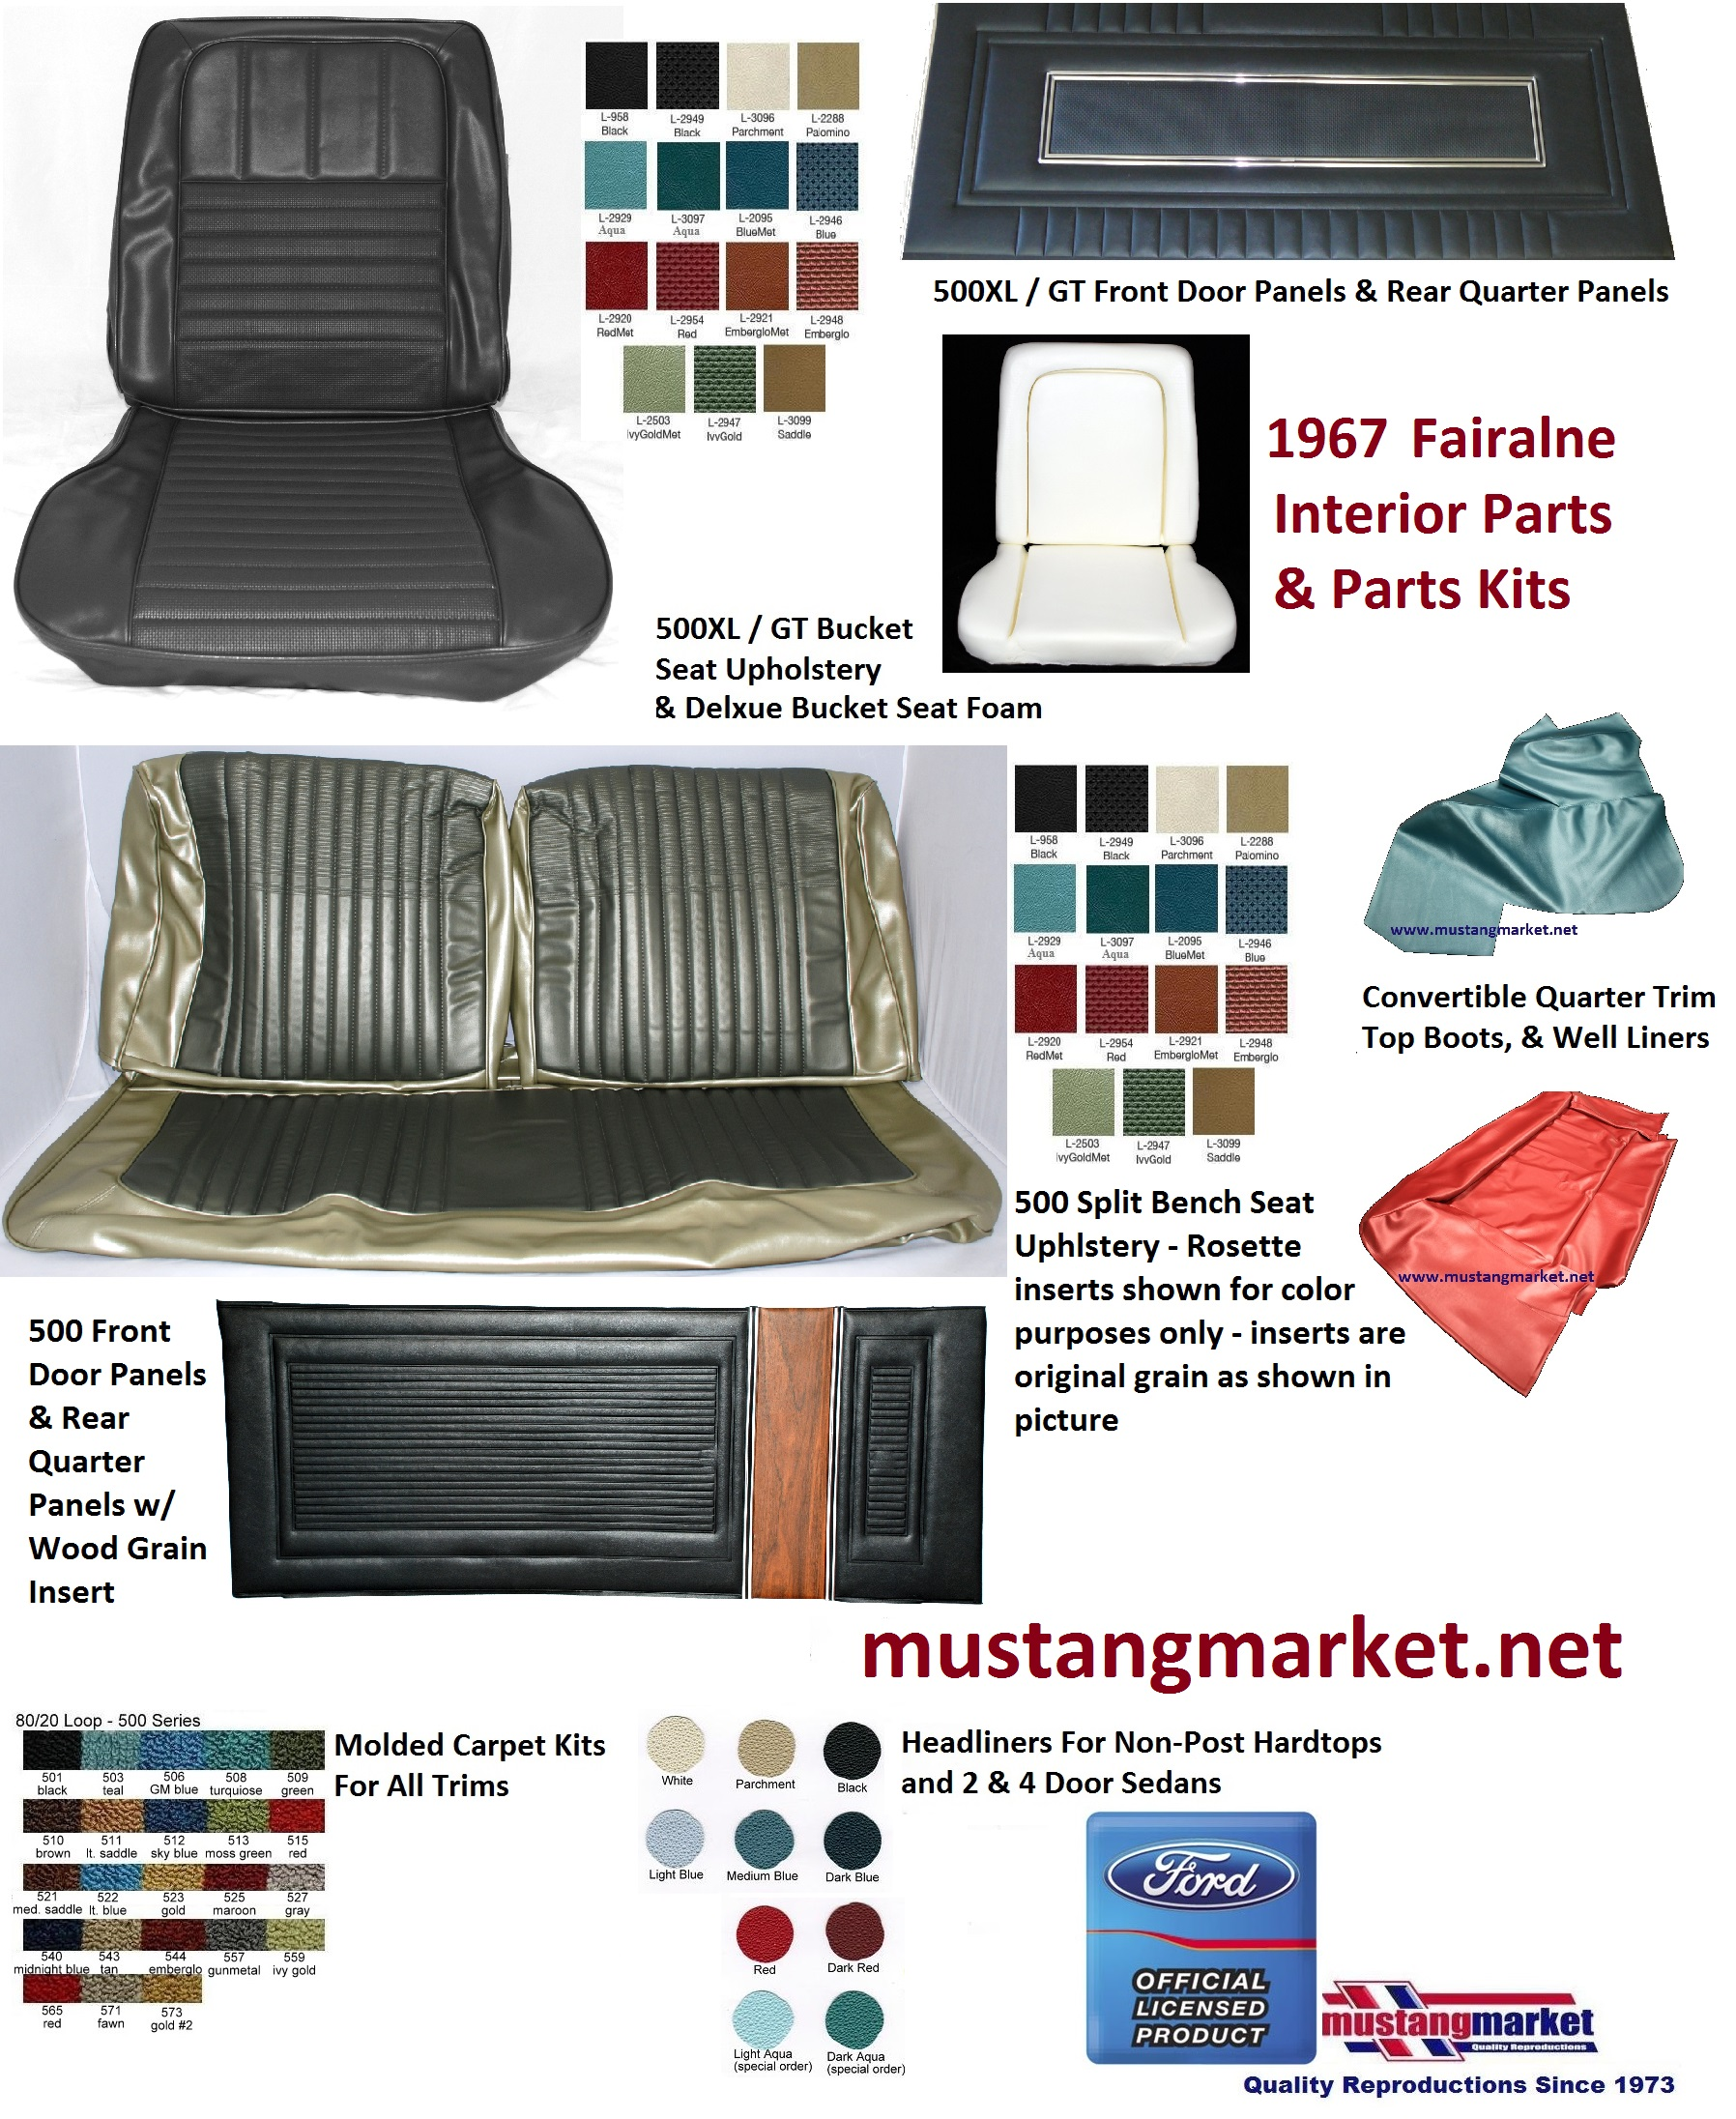 1967 67 Fairlane Interior Kits Build Your Own Interior